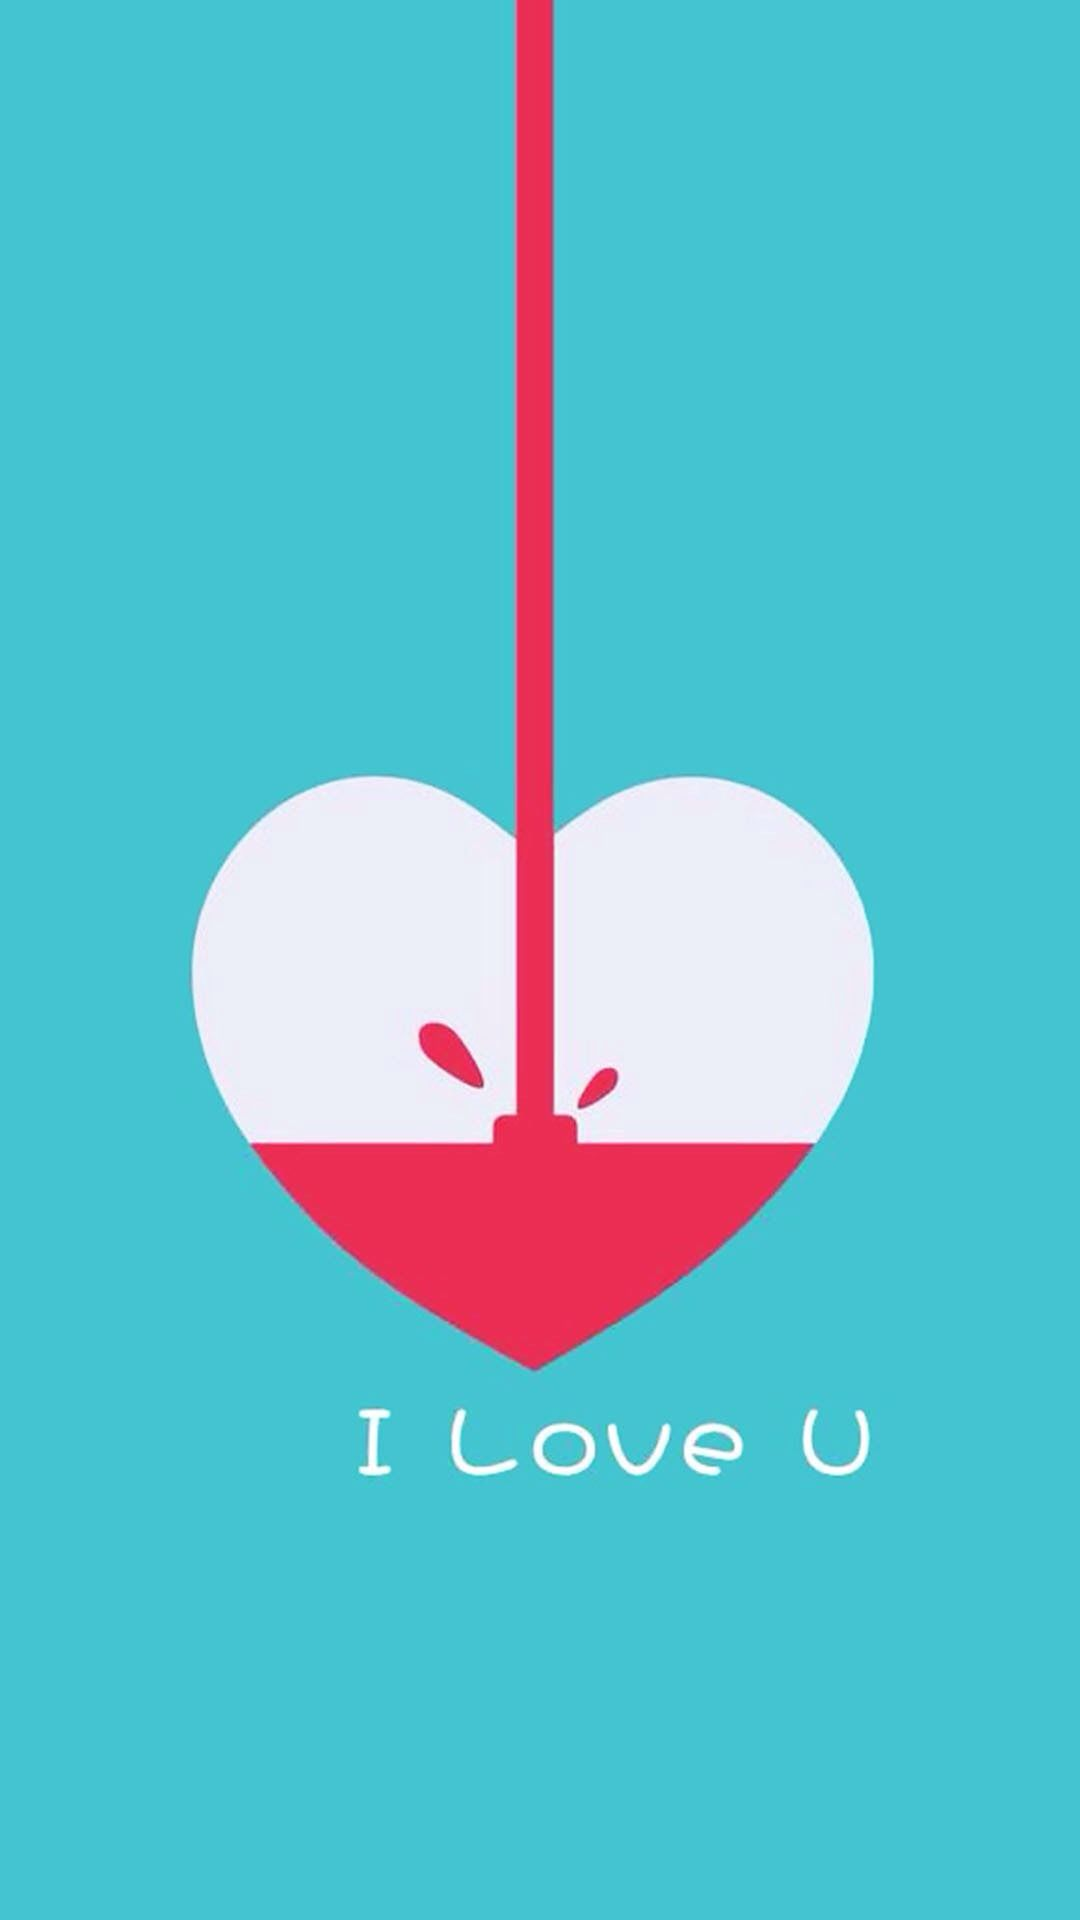 Wallpaper Iphone I Love You : I love you Wallpapers Pinterest I love you, Love you ...